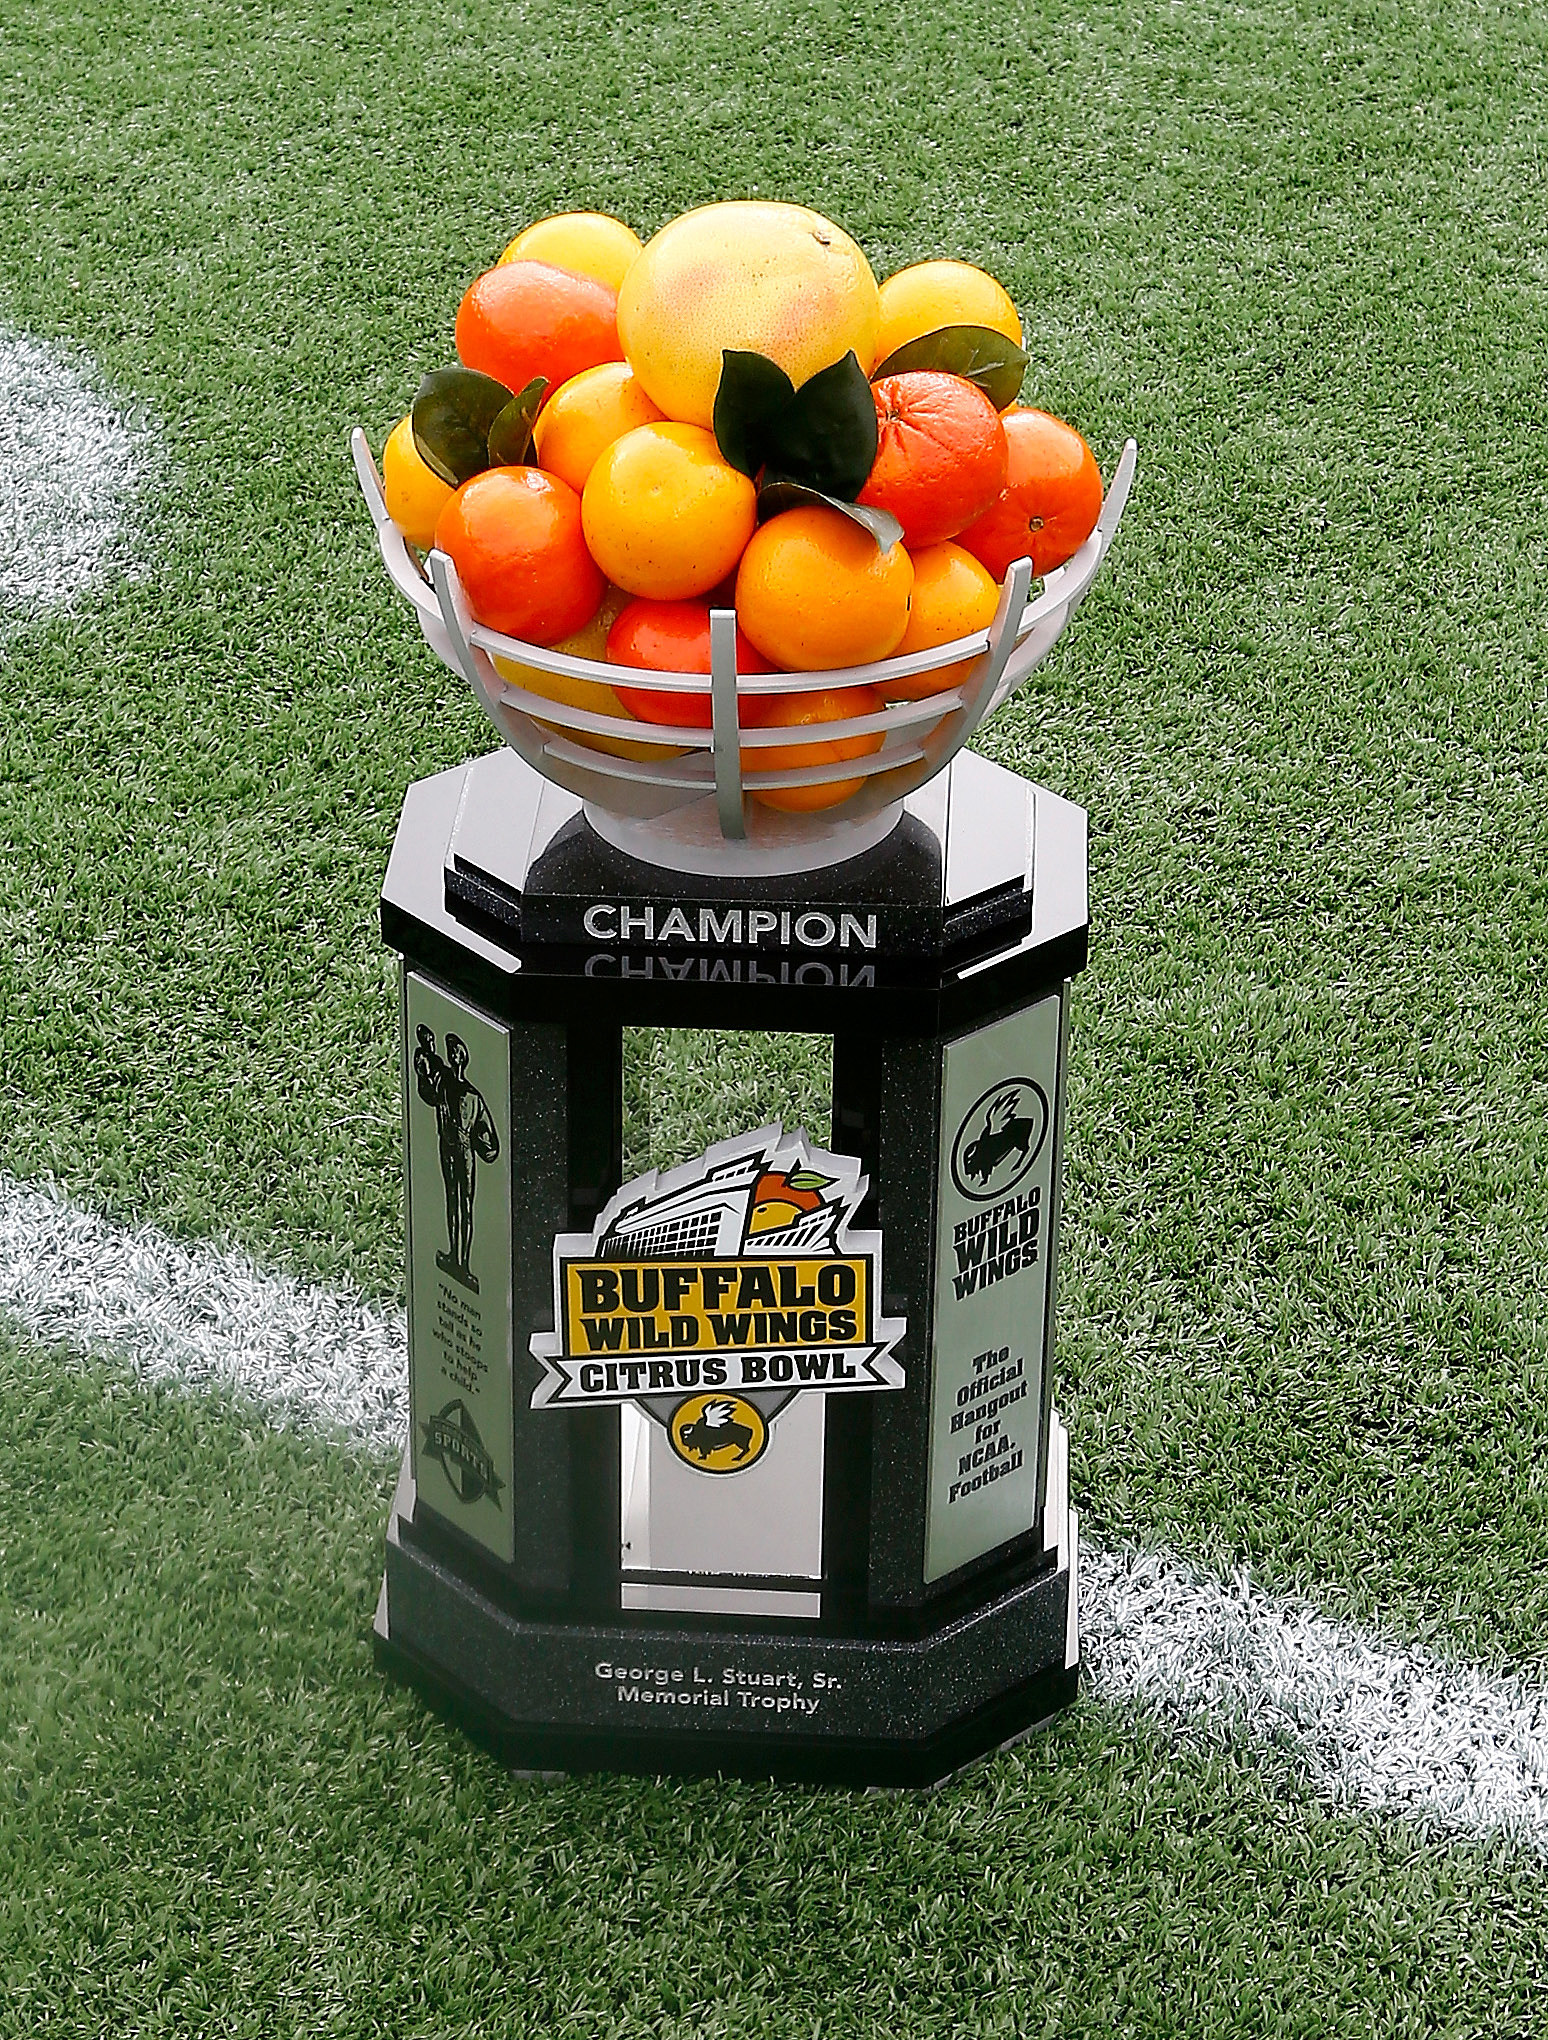 Buffalo Wild Wings Citrus Bowl - Minnesota v Missouri